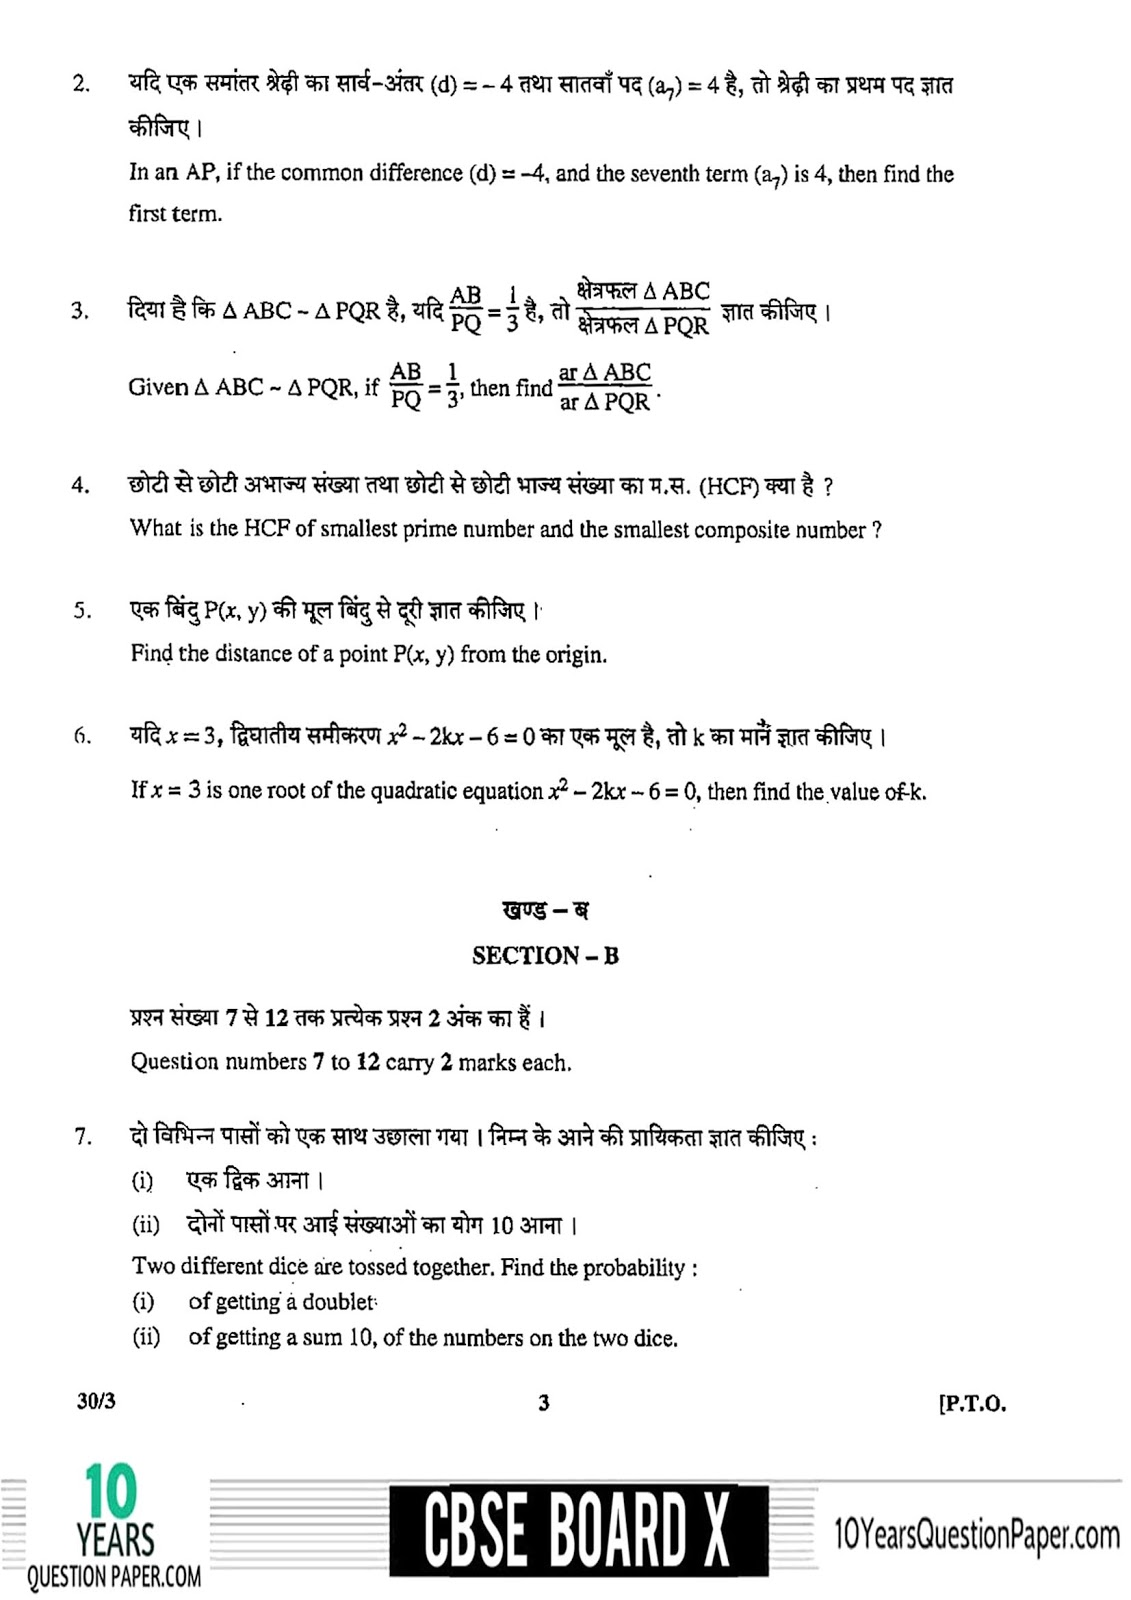 CBSE Board 2018 Maths Question paper Class 10 Page-03